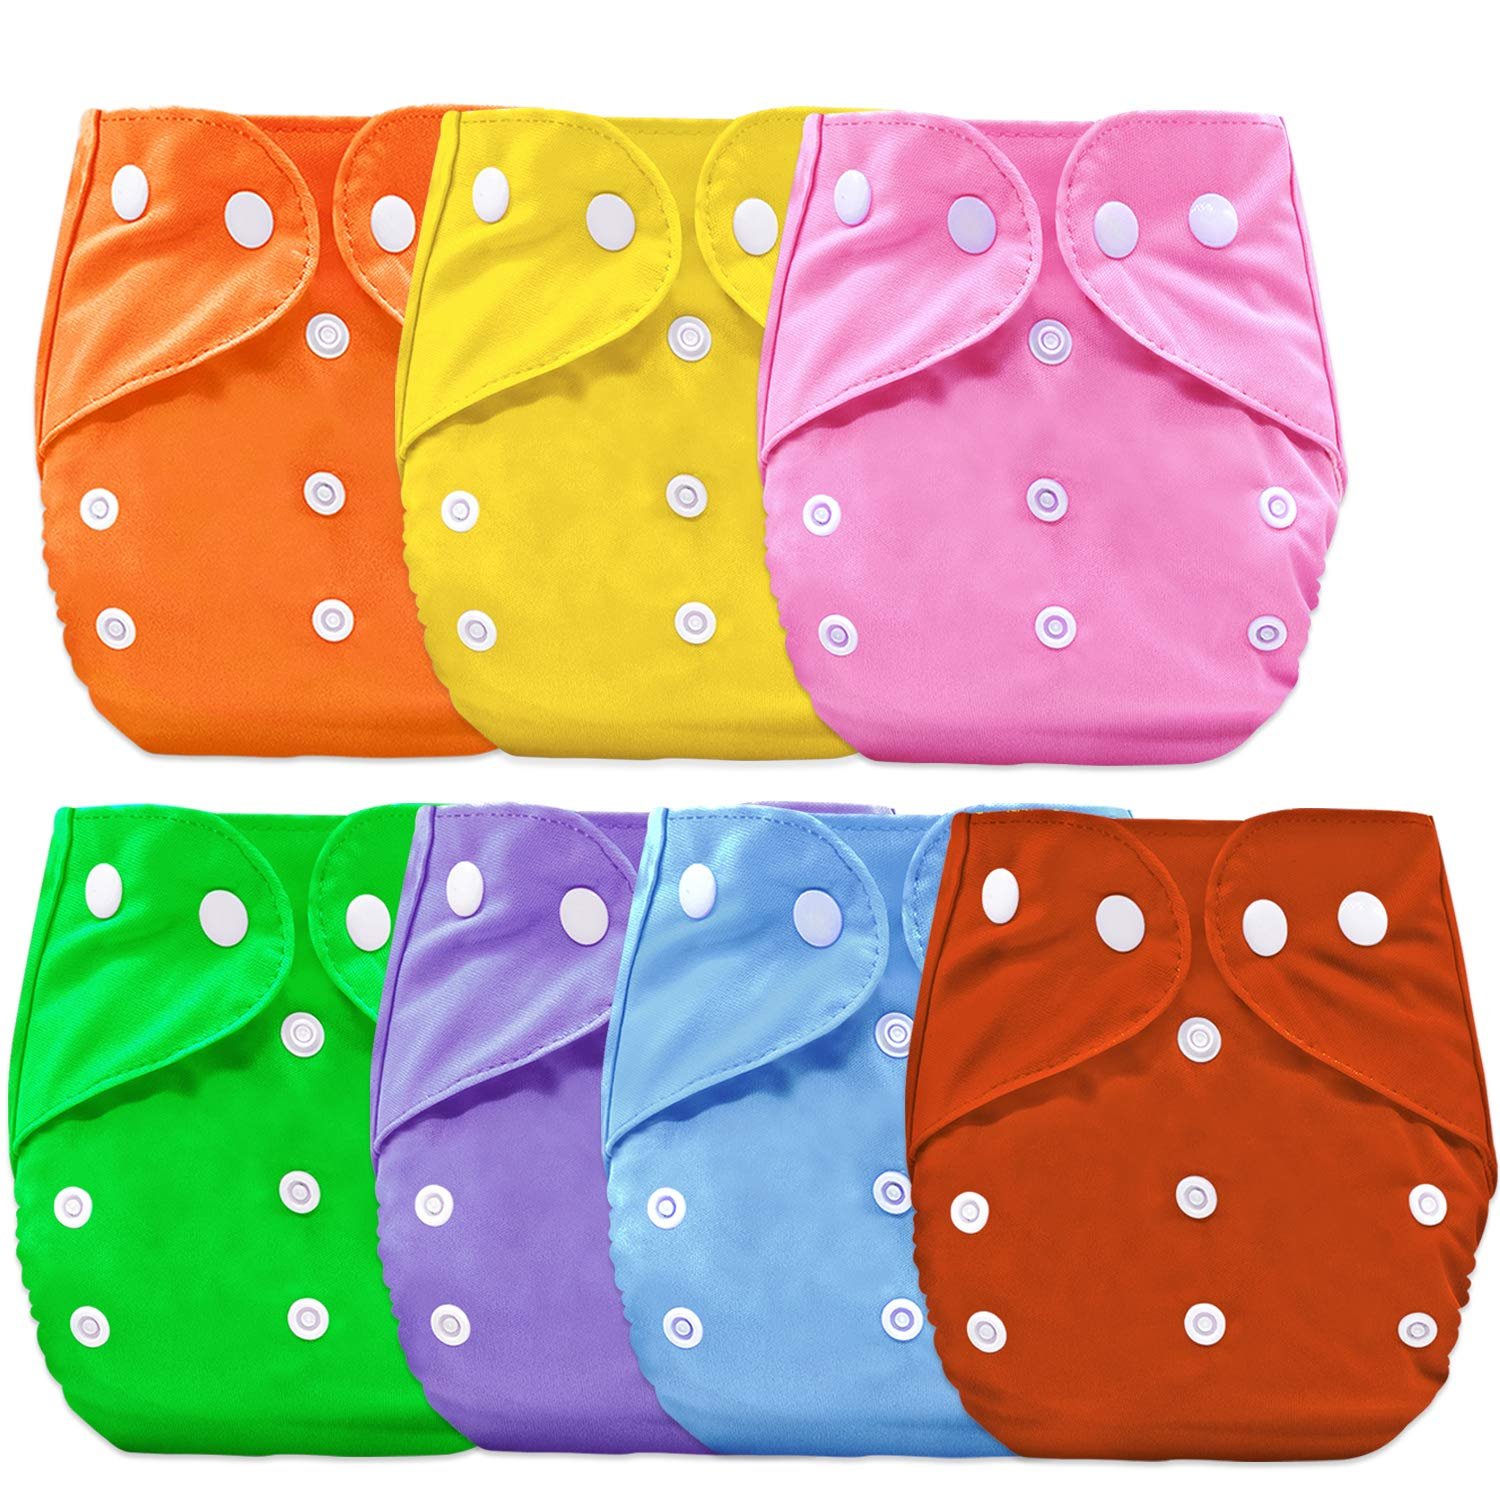 Buy Bembika B Plus Solid Cloth Diapers for Babies, Washable Reusable,  Adjustable Sizes (7 Combo) (No Inserts Included) 7B Online at Low Prices in  India - Amazon.in